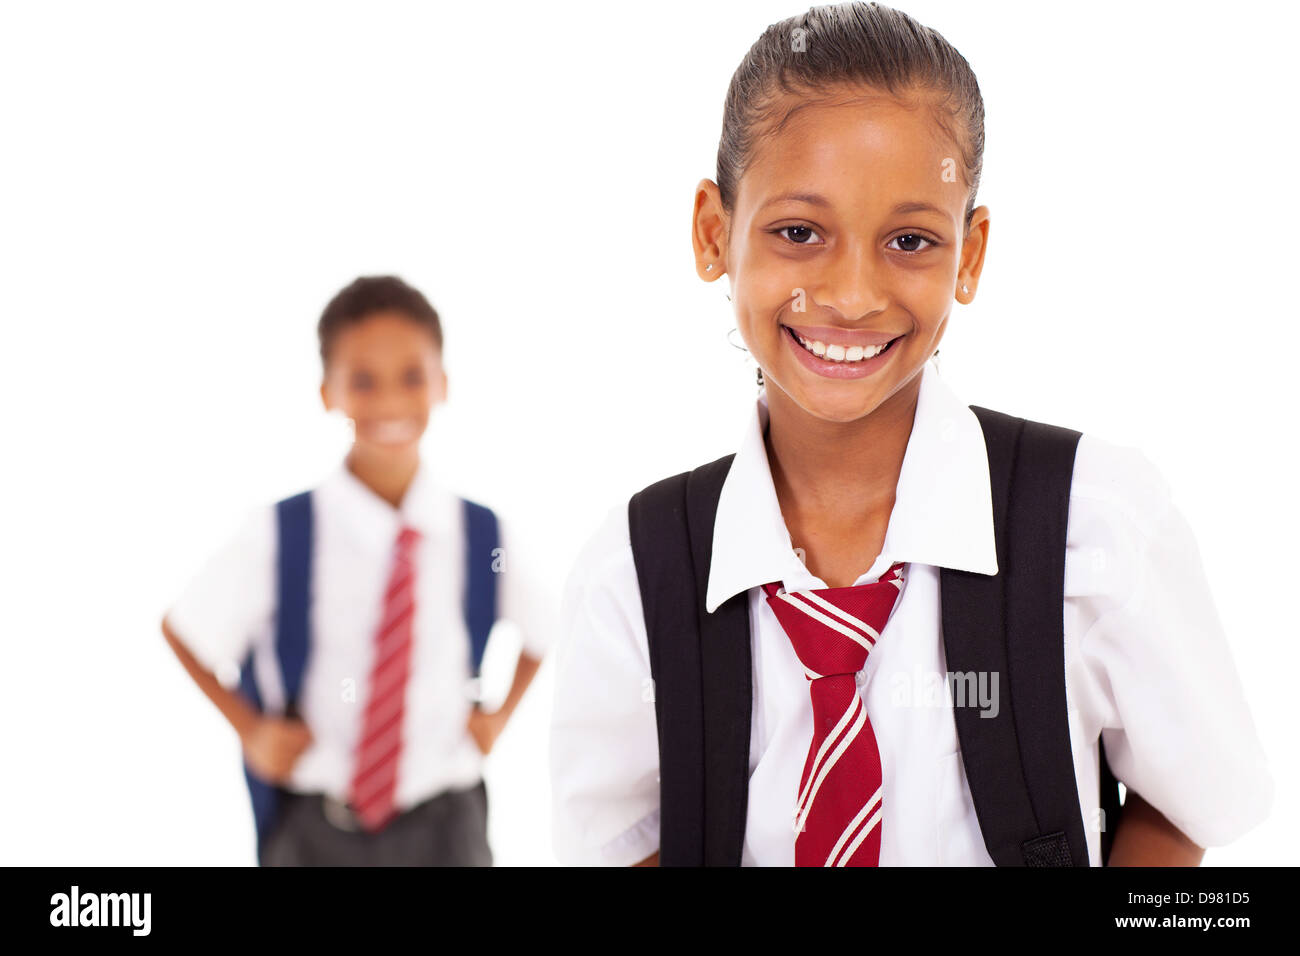 cute elementary schoolgirl in front of classmate - Stock Image